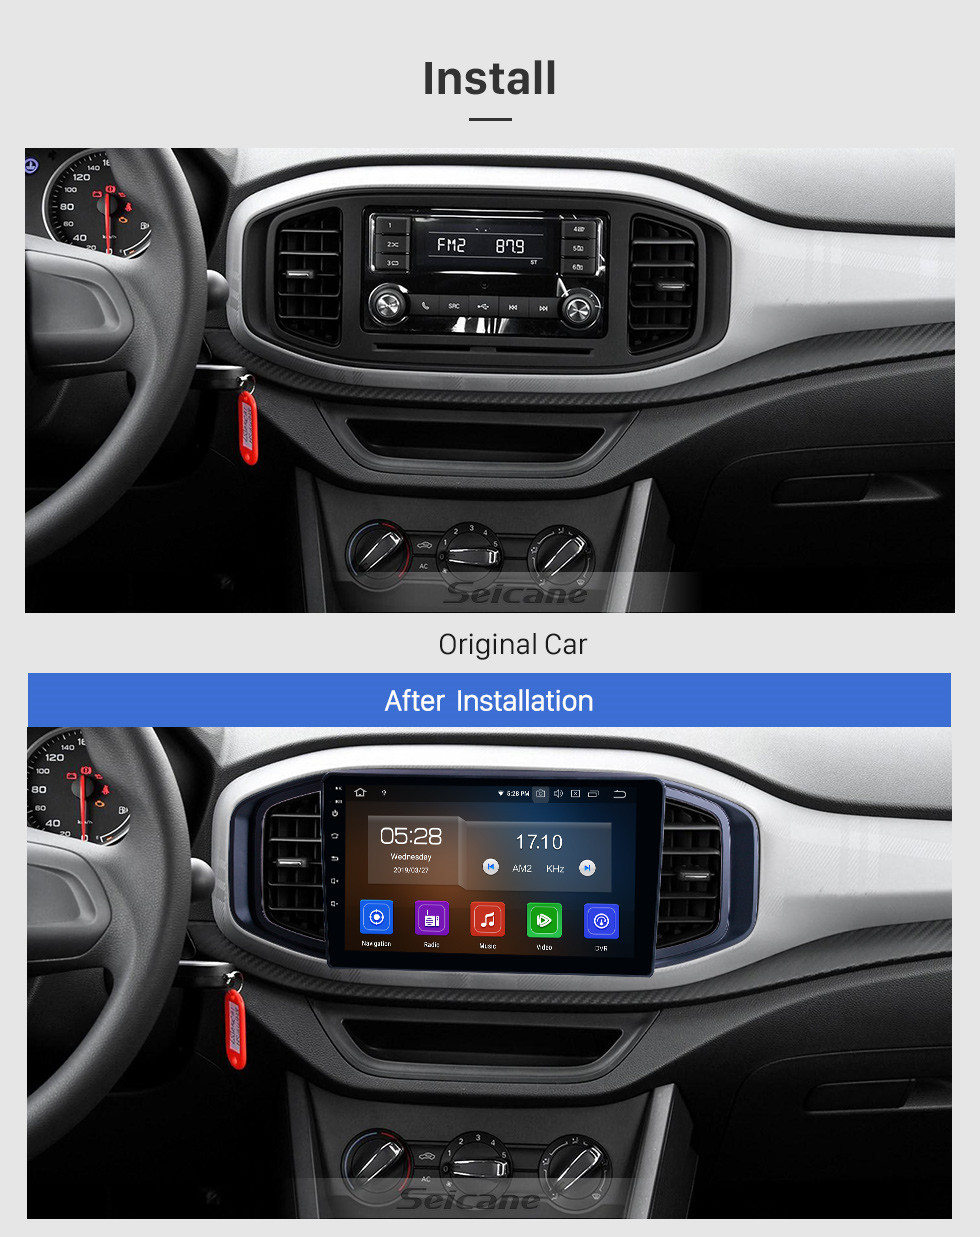 Seicane OEM 9 inch Android 10.0 for 2017 MG3 Radio Bluetooth AUX USB HD Touchscreen GPS Navigation System Carplay support DAB+